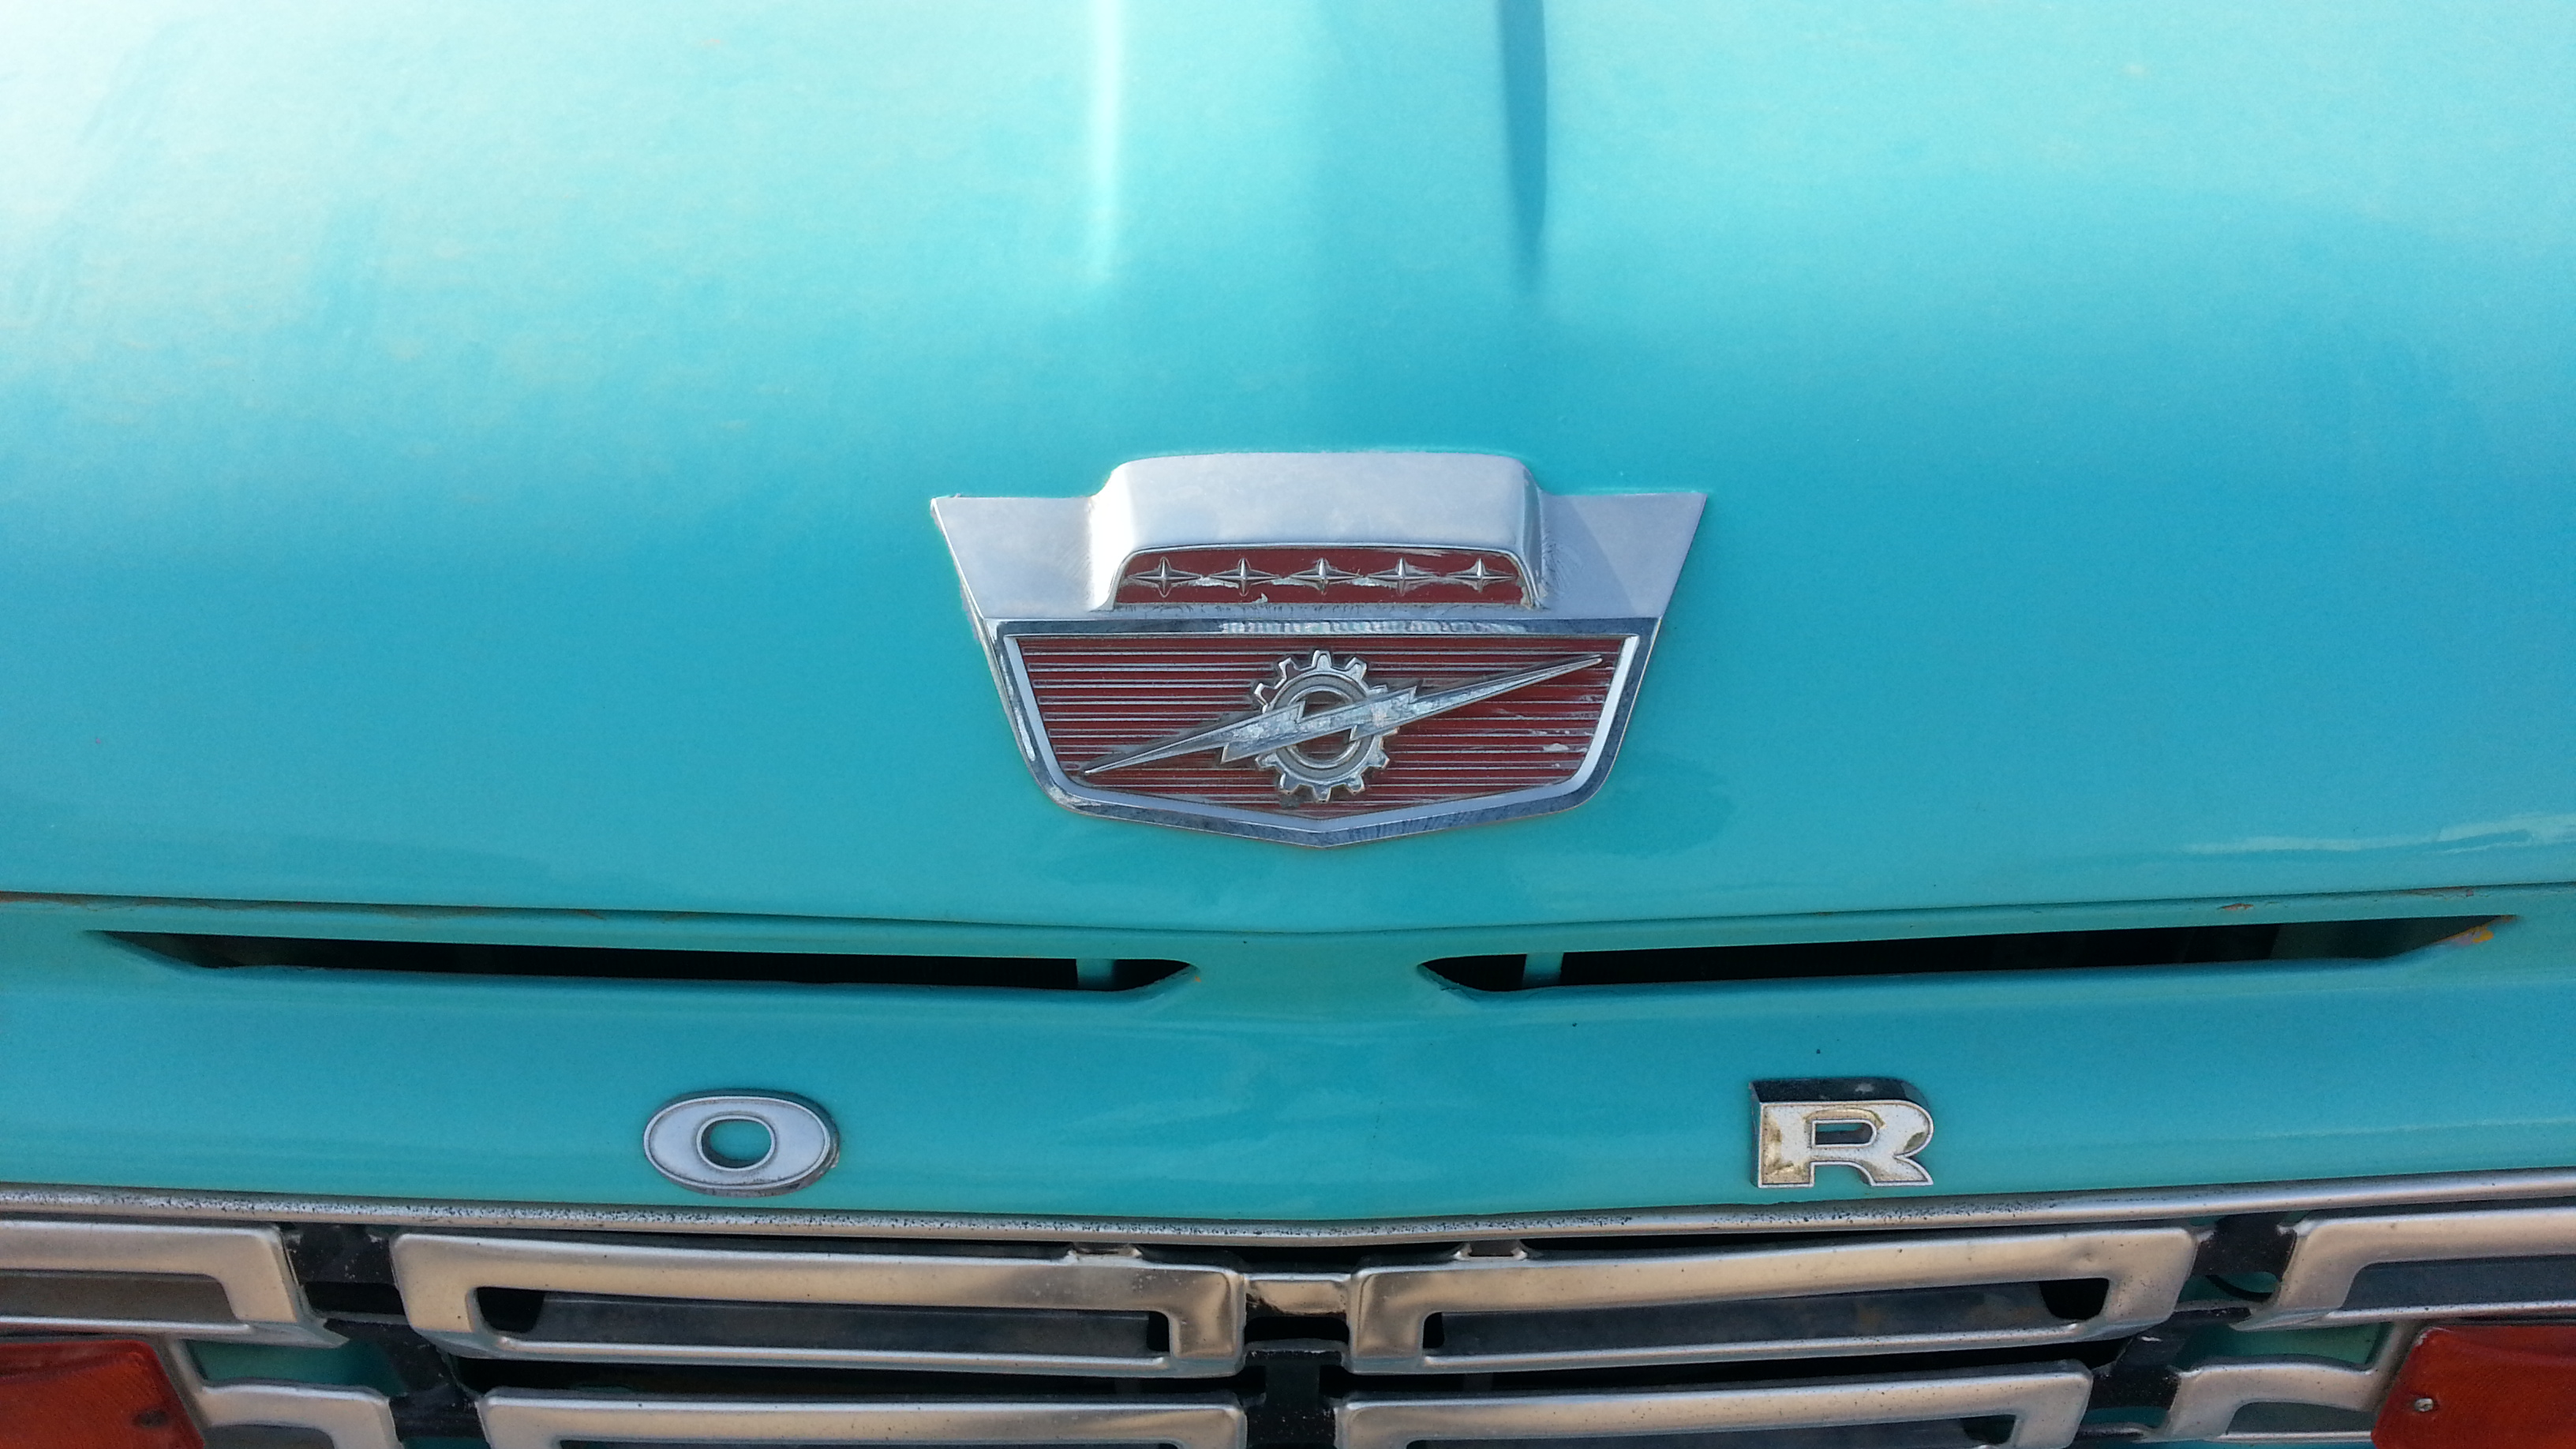 Blue Ford Truck, Auto, Automobile, Car, Old, HQ Photo